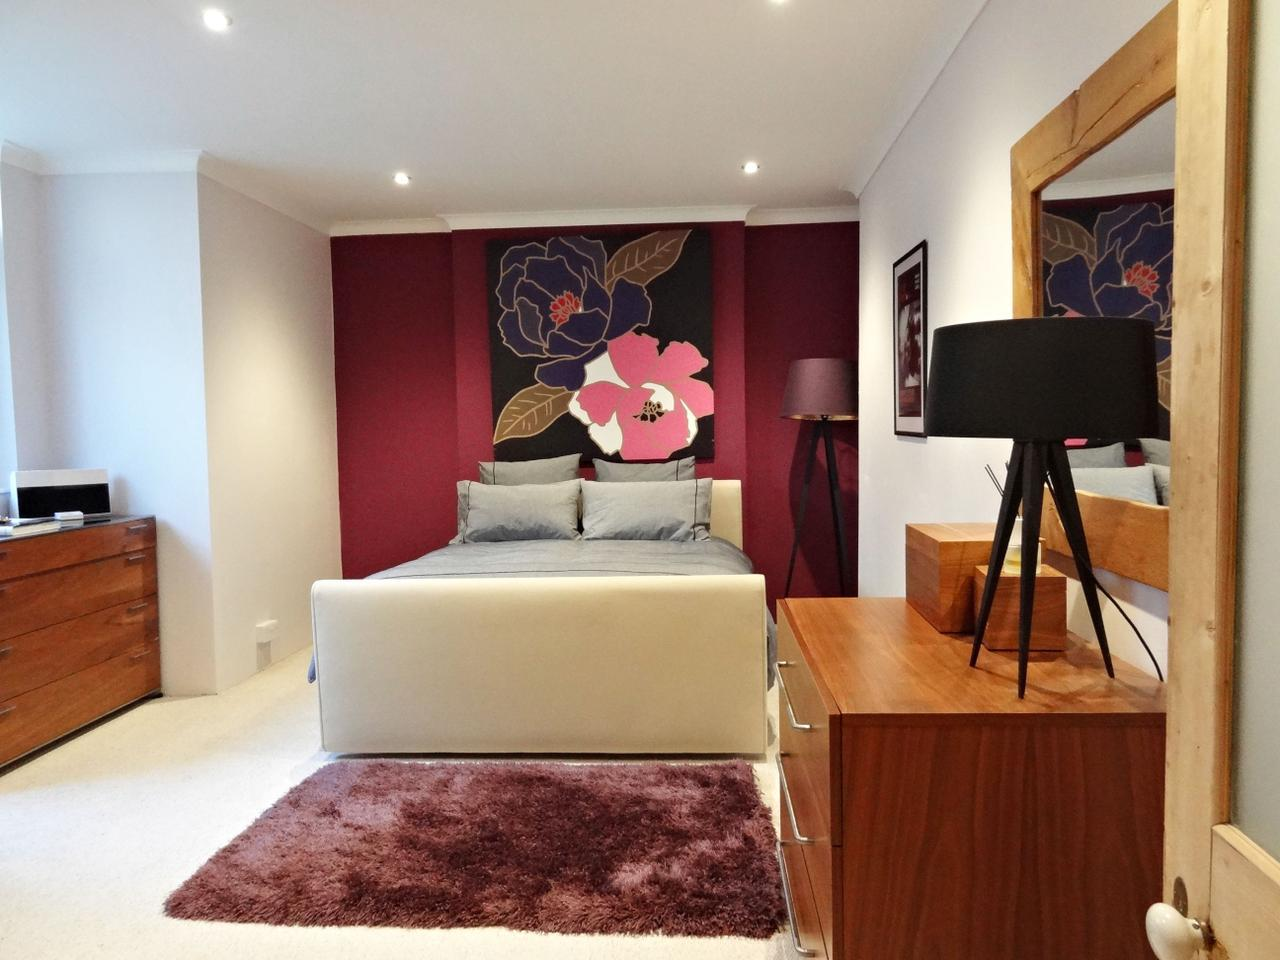 Brighton Rock Apartment, Brighton & Hove Images - 9